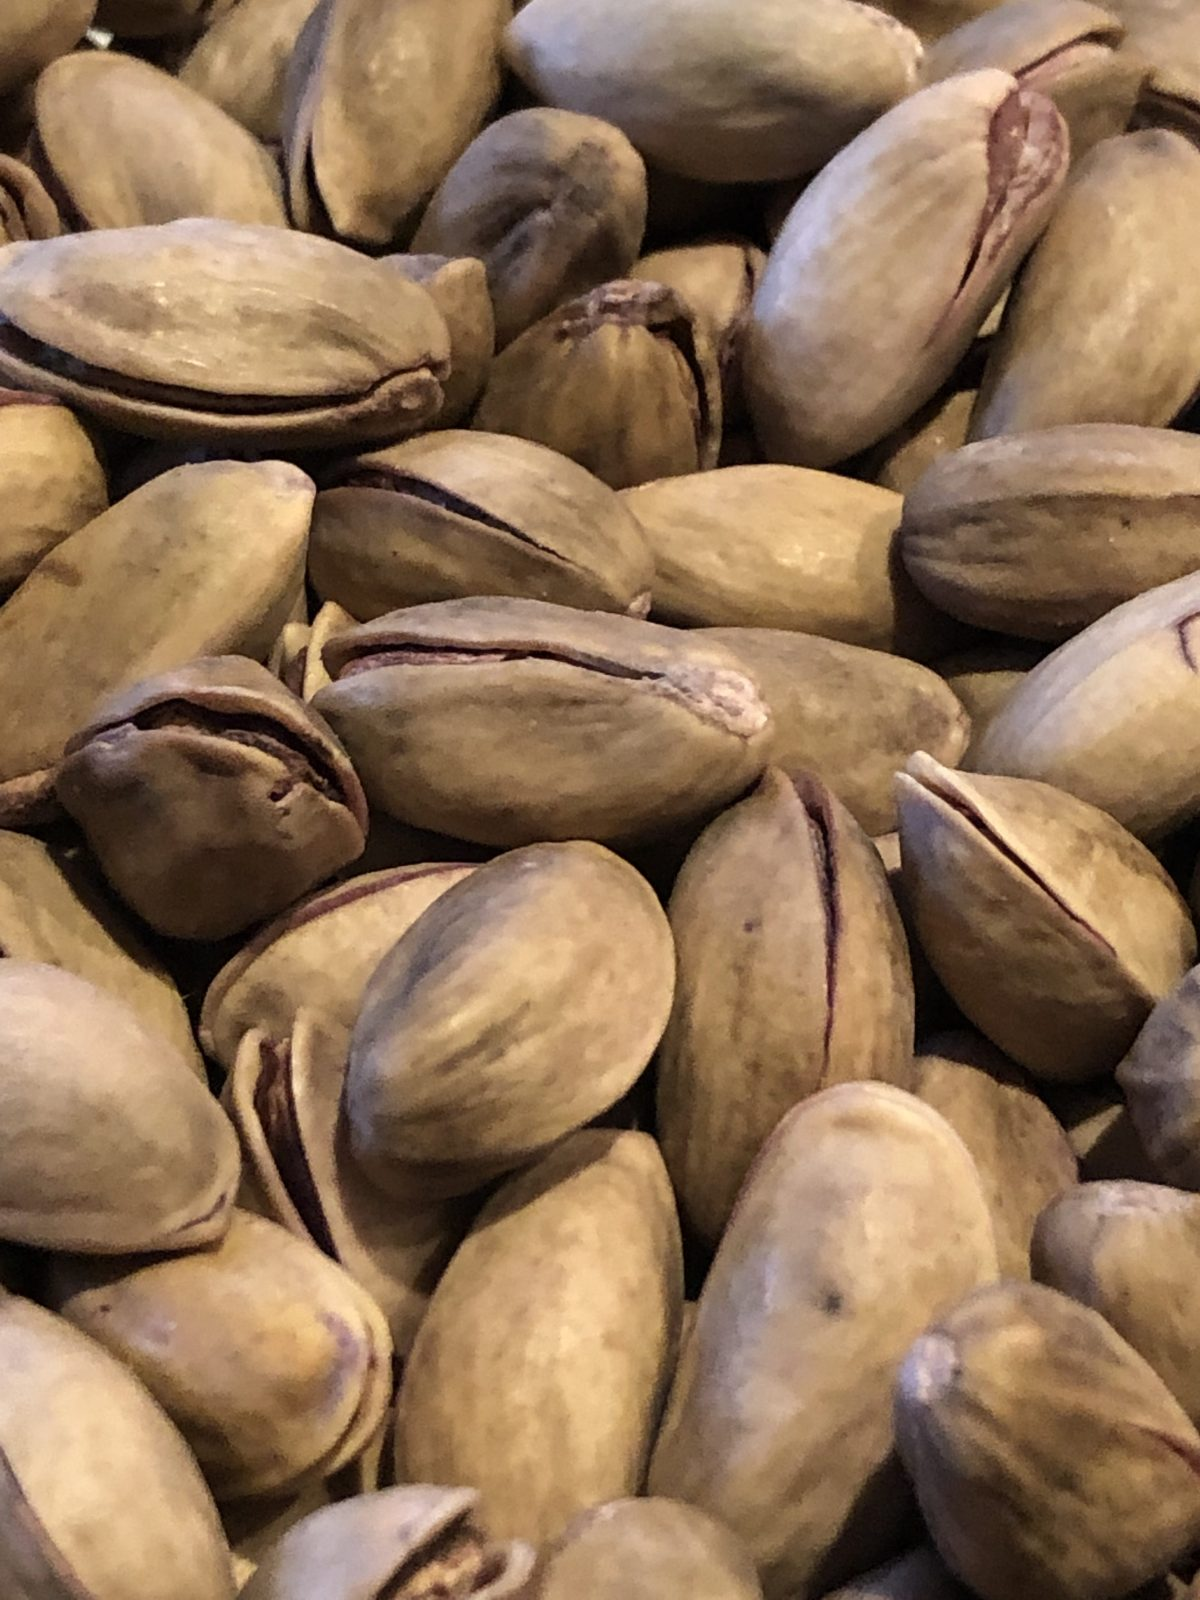 Close up photo of pistachios in the shell